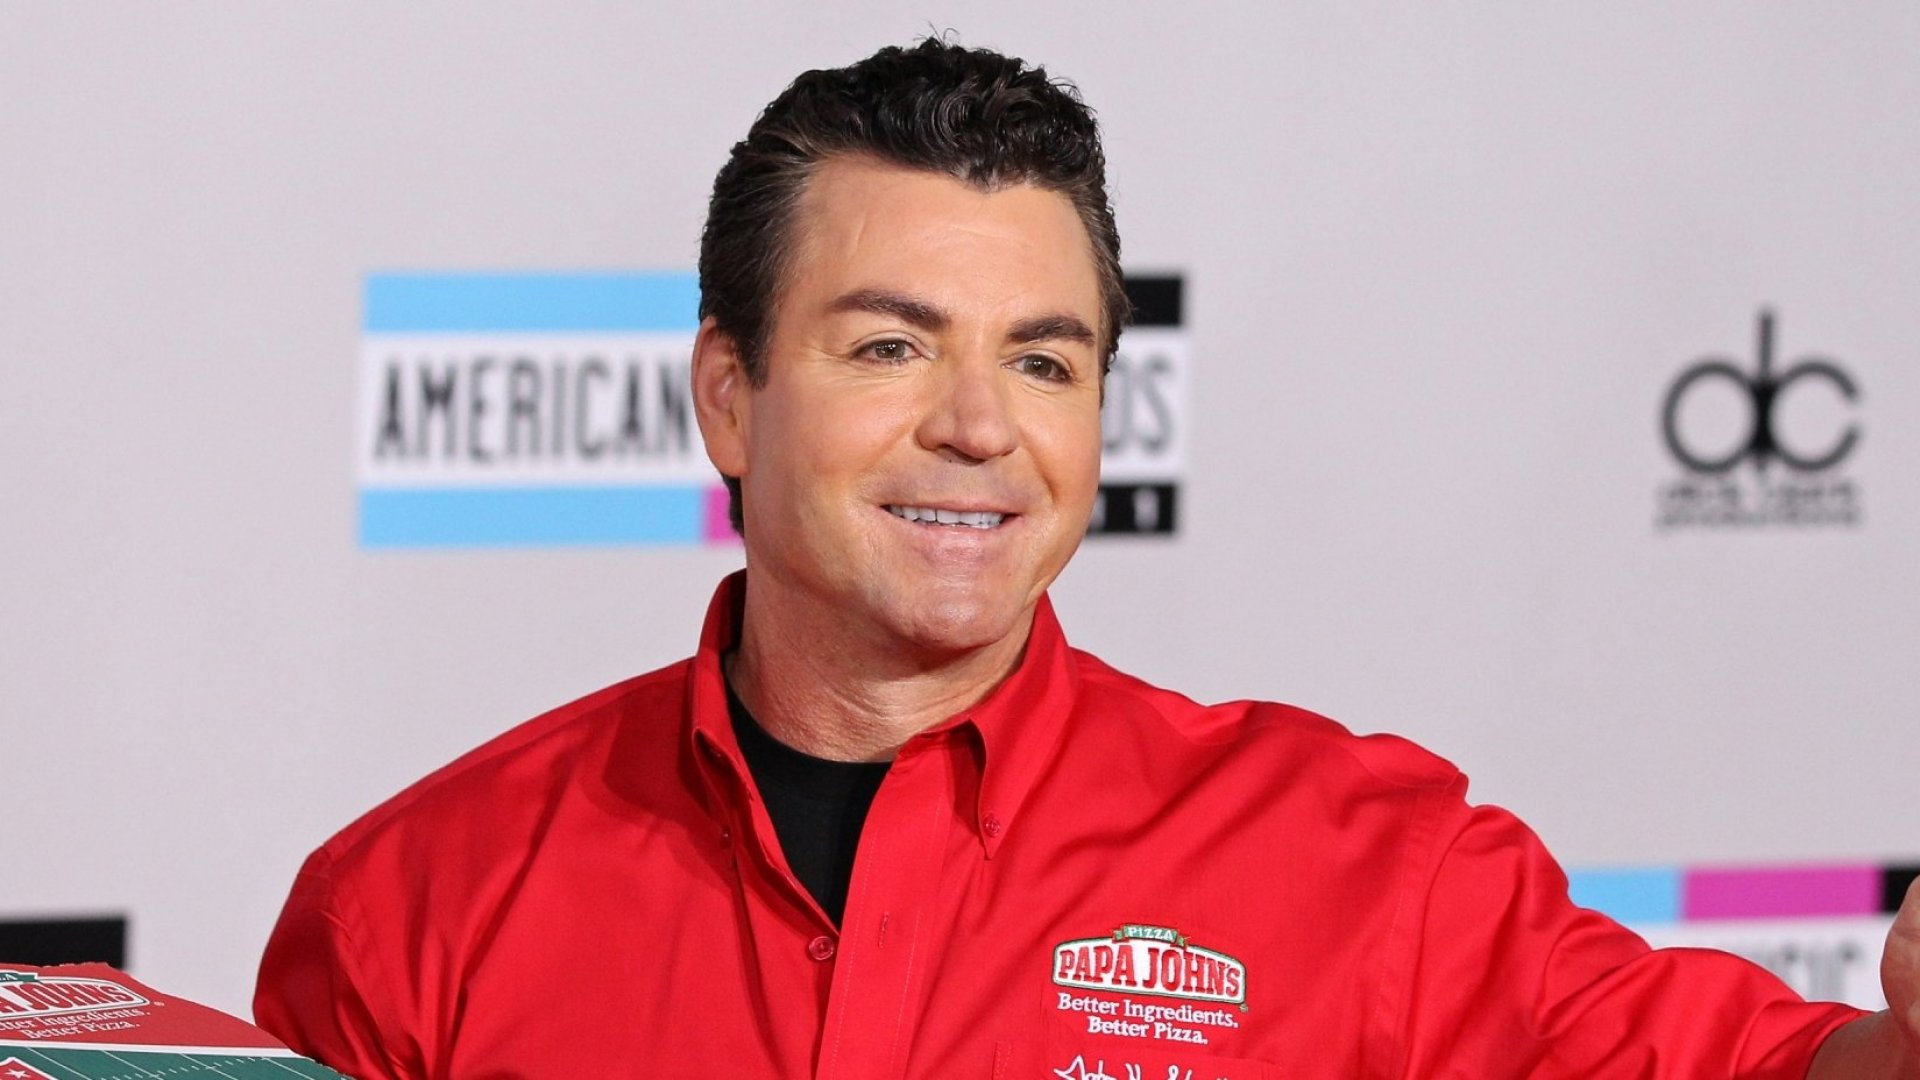 Papa John's Founder and Chairman Just Resigned After Using the N-Word, and This Behavior Affects More Than Just Him